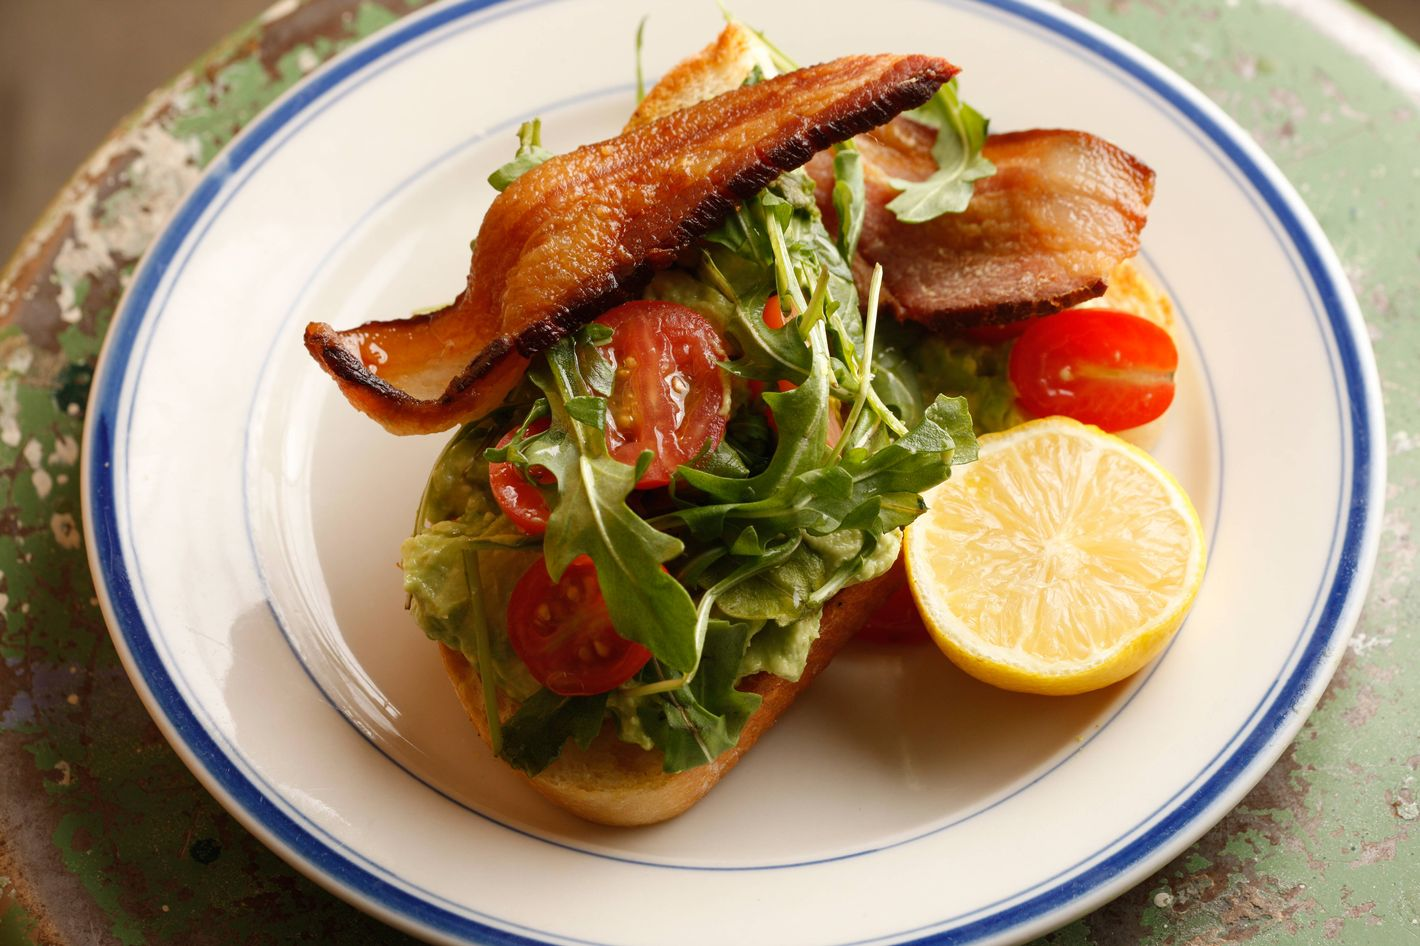 The BLT, with double-smoked bacon, grape tomatoes, and arugula.